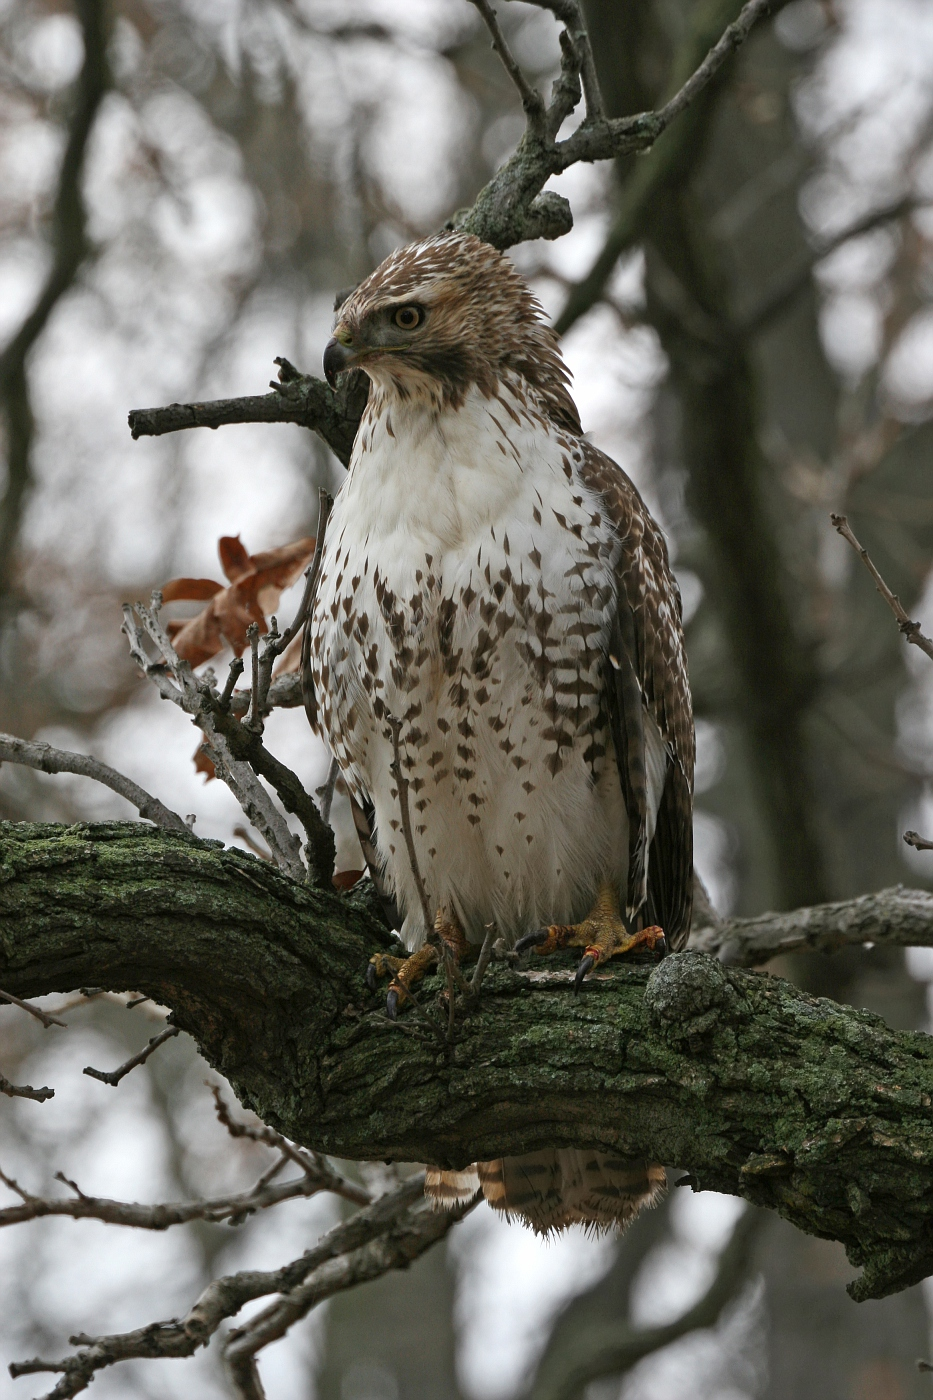 Juvenile Red Tailed Hawk #5